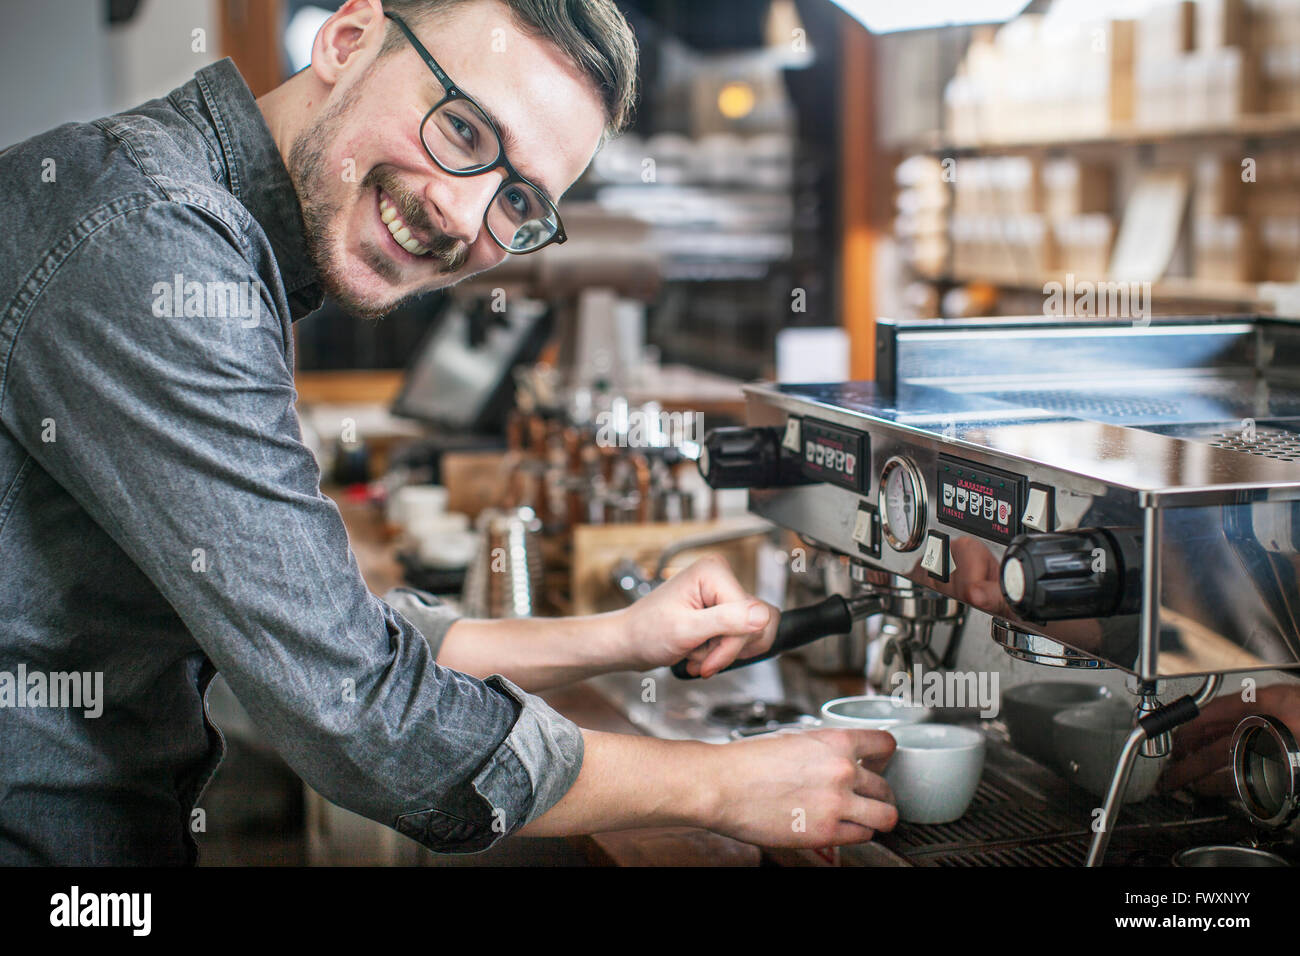 Sweden, Smiling barista making coffee - Stock Image